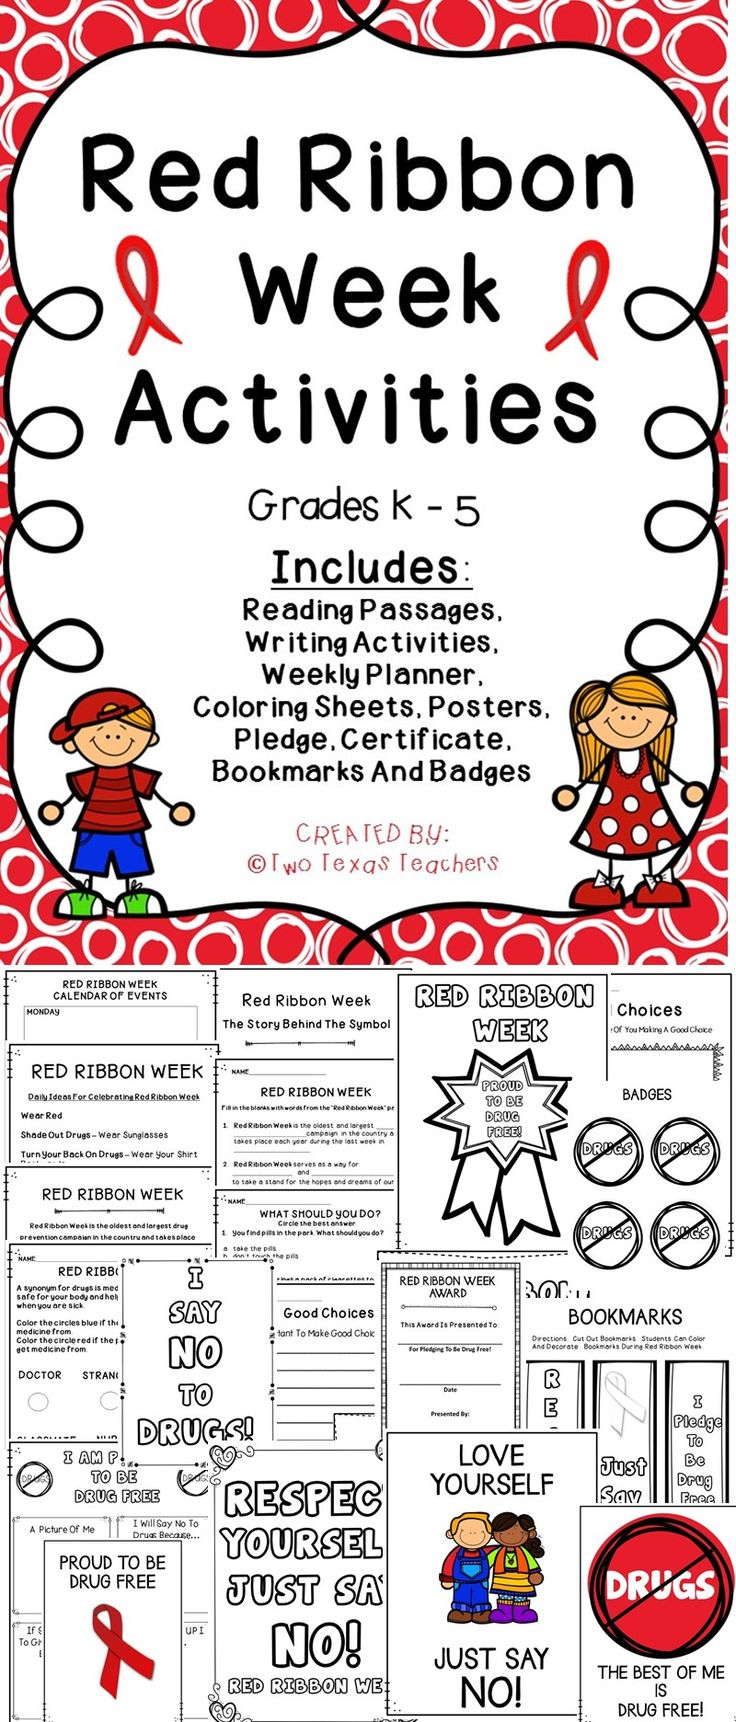 Red Ribbon Week - Celebrate Red Ribbon Week With This Printable Activity Pack For The Classroom. #redribbon